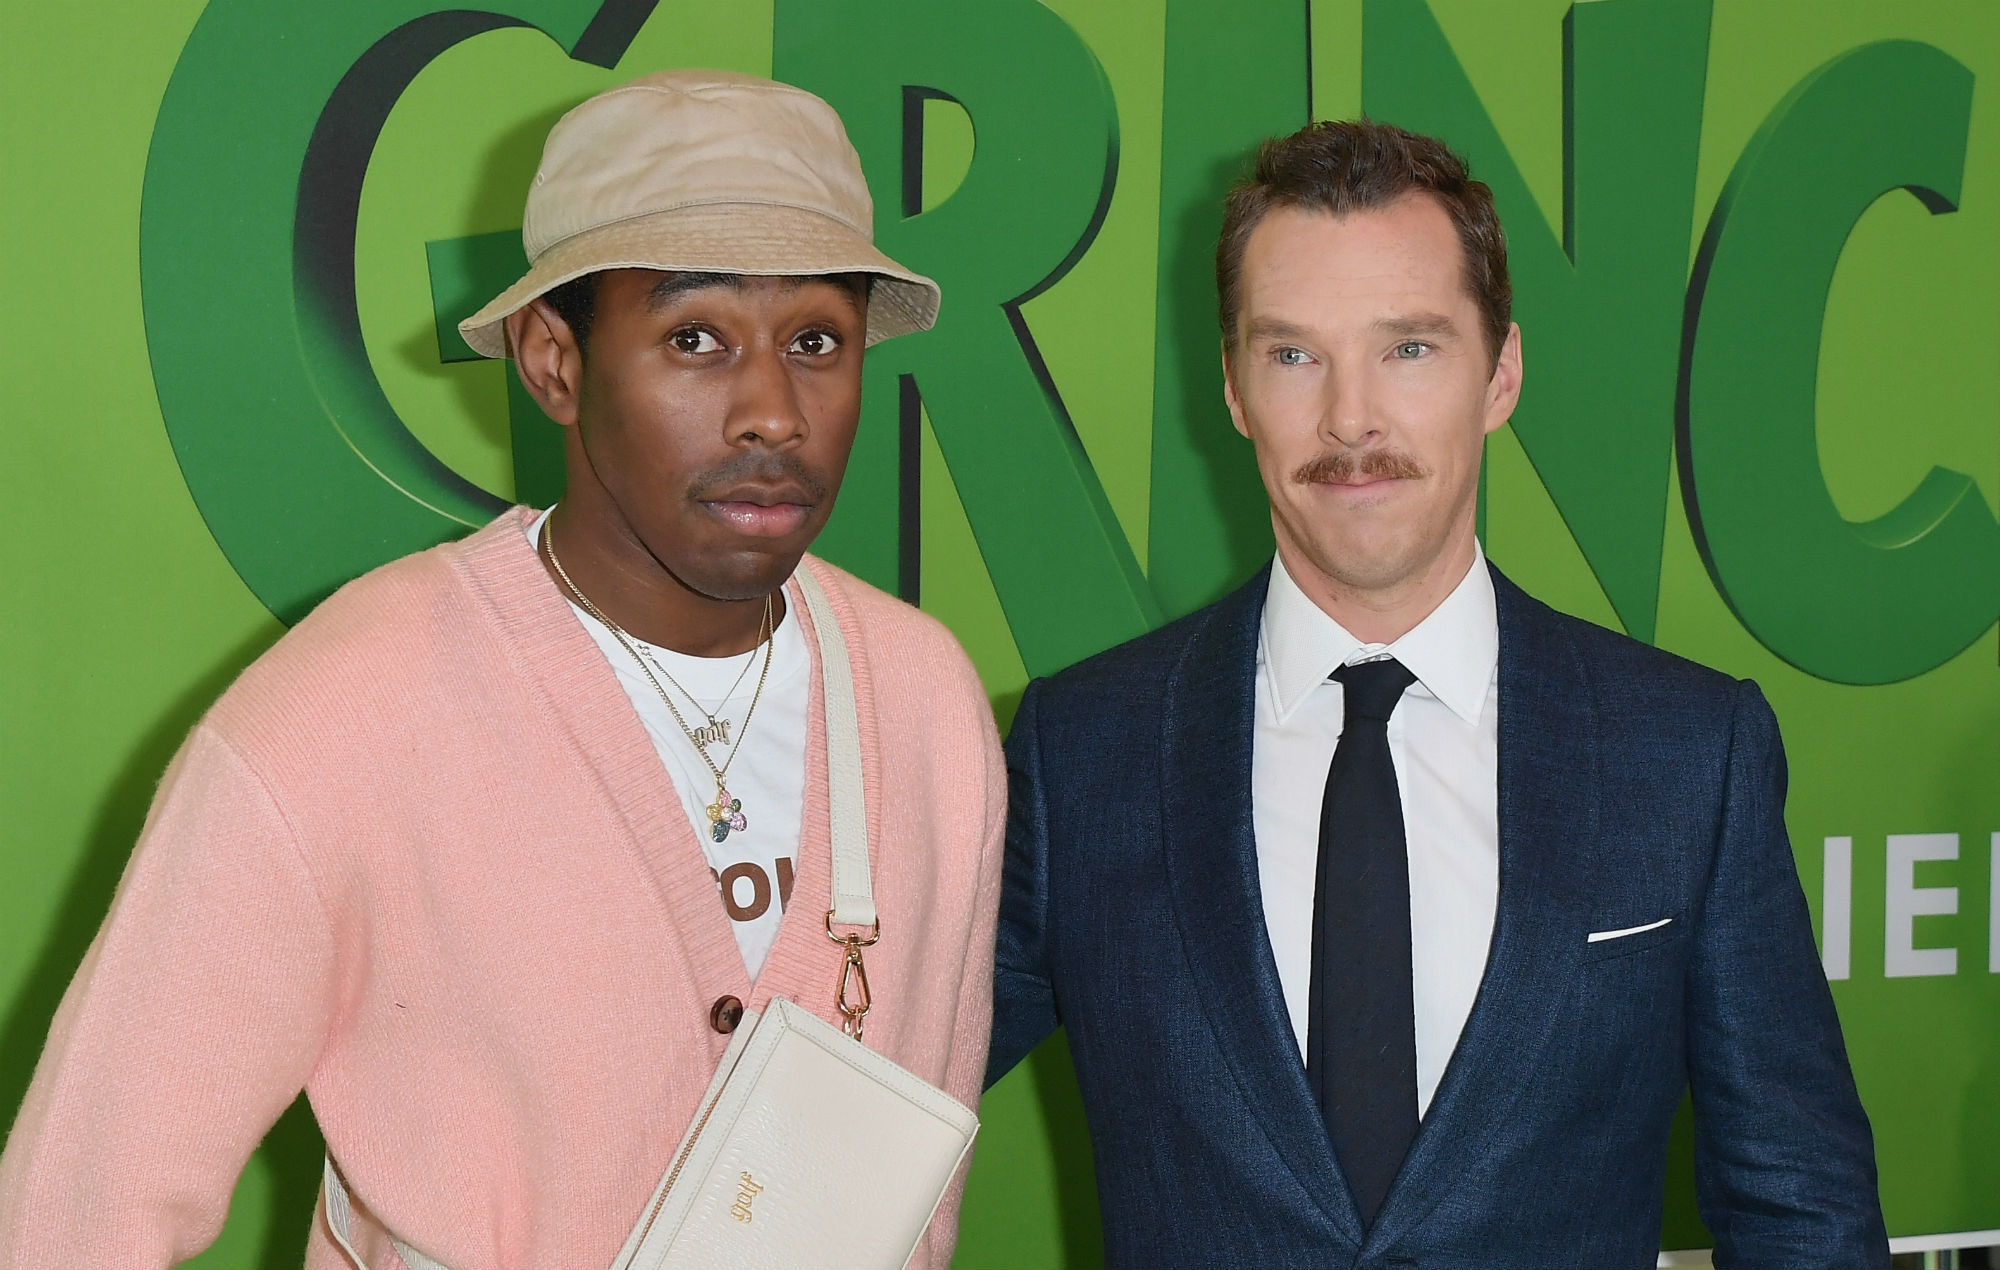 Tyler, the Creator and 'Grinch' star Benedict Cumberbatch